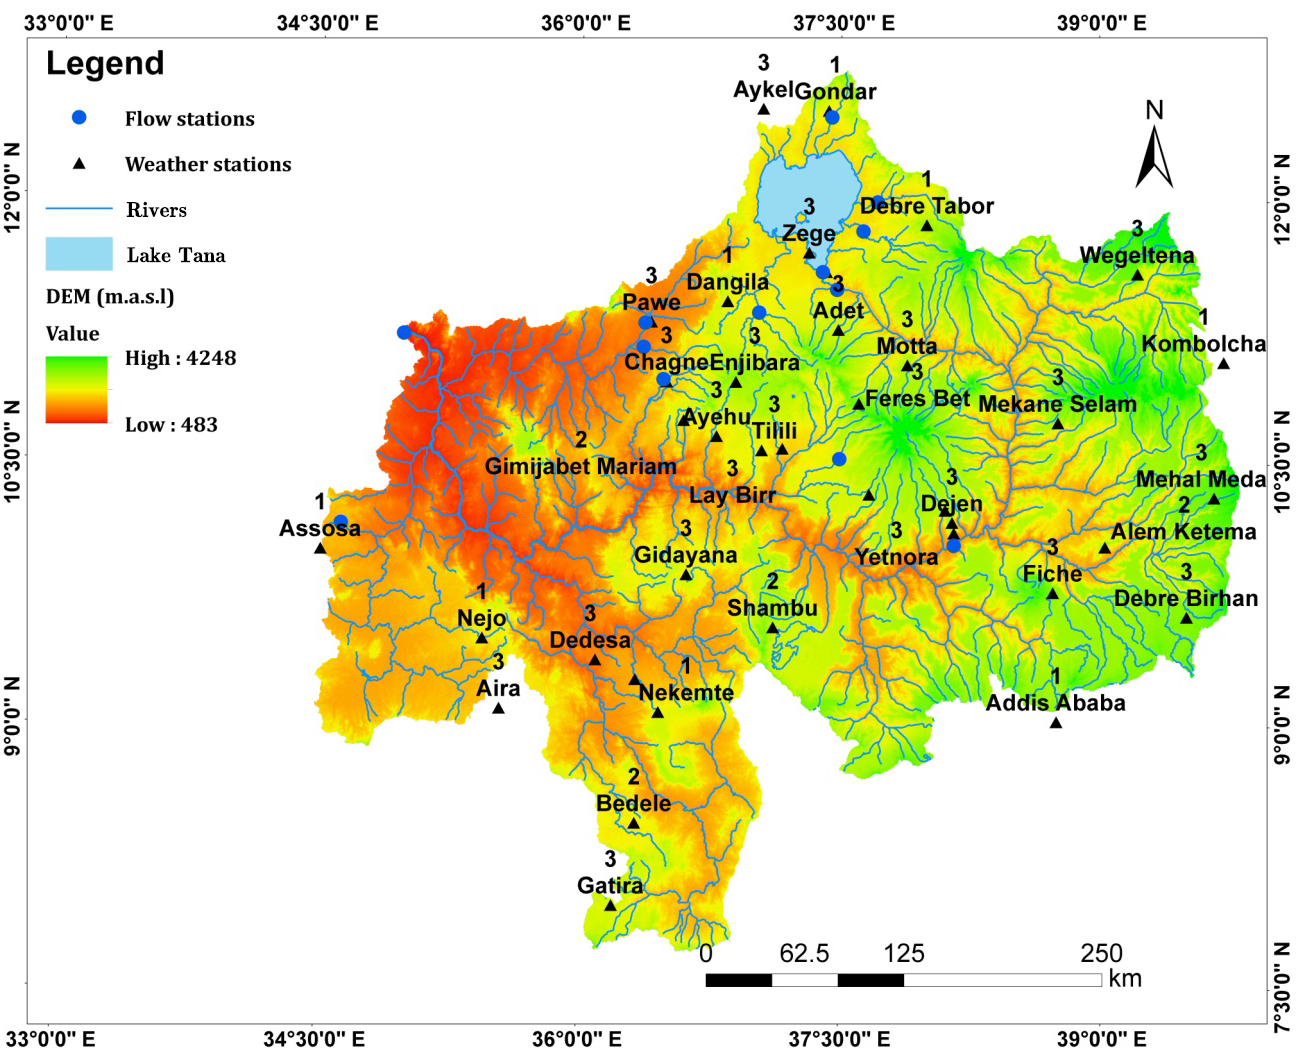 HESS - Analysis of combined and isolated effects of land-use and